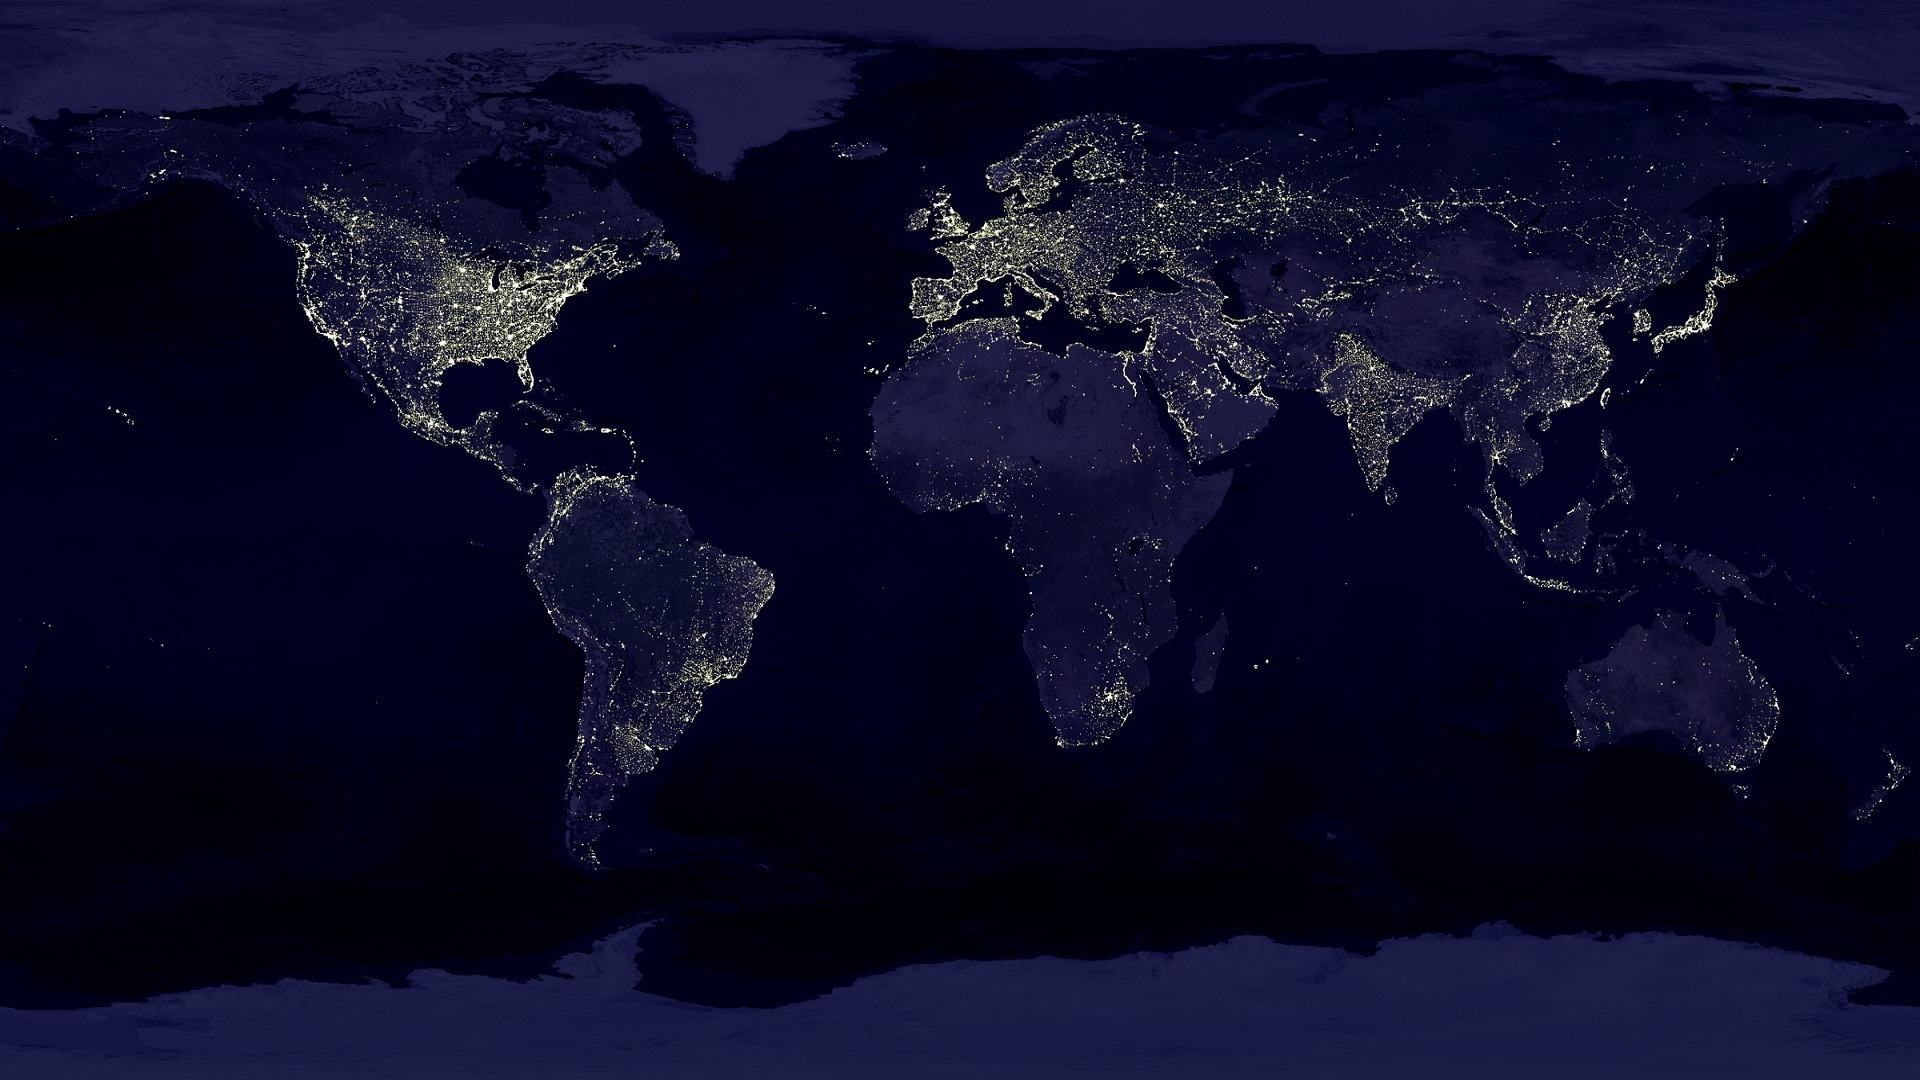 night worldmap continents Oceans